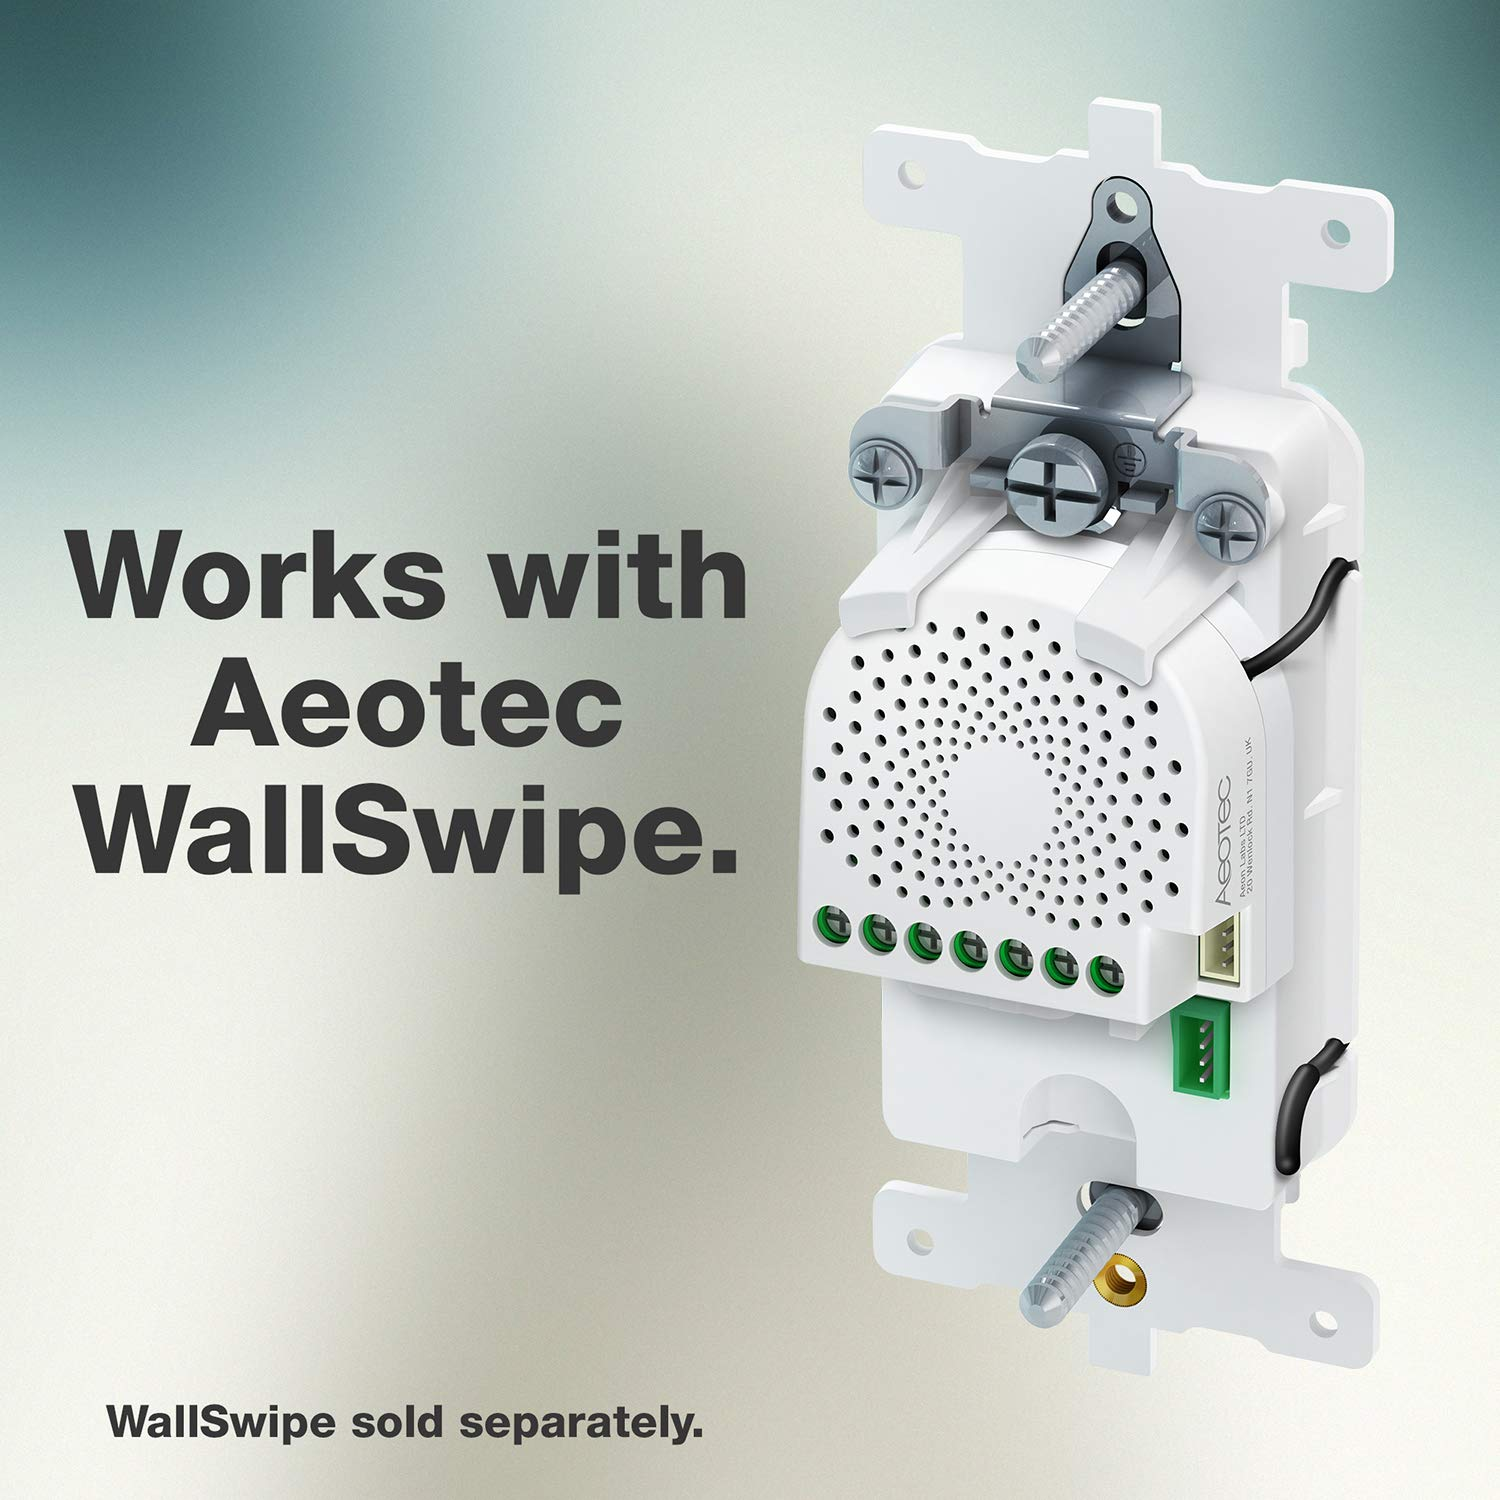 Aeotec Nano Shutter, Z-Wave Plus S2 Motor Driver On/Off/Stop